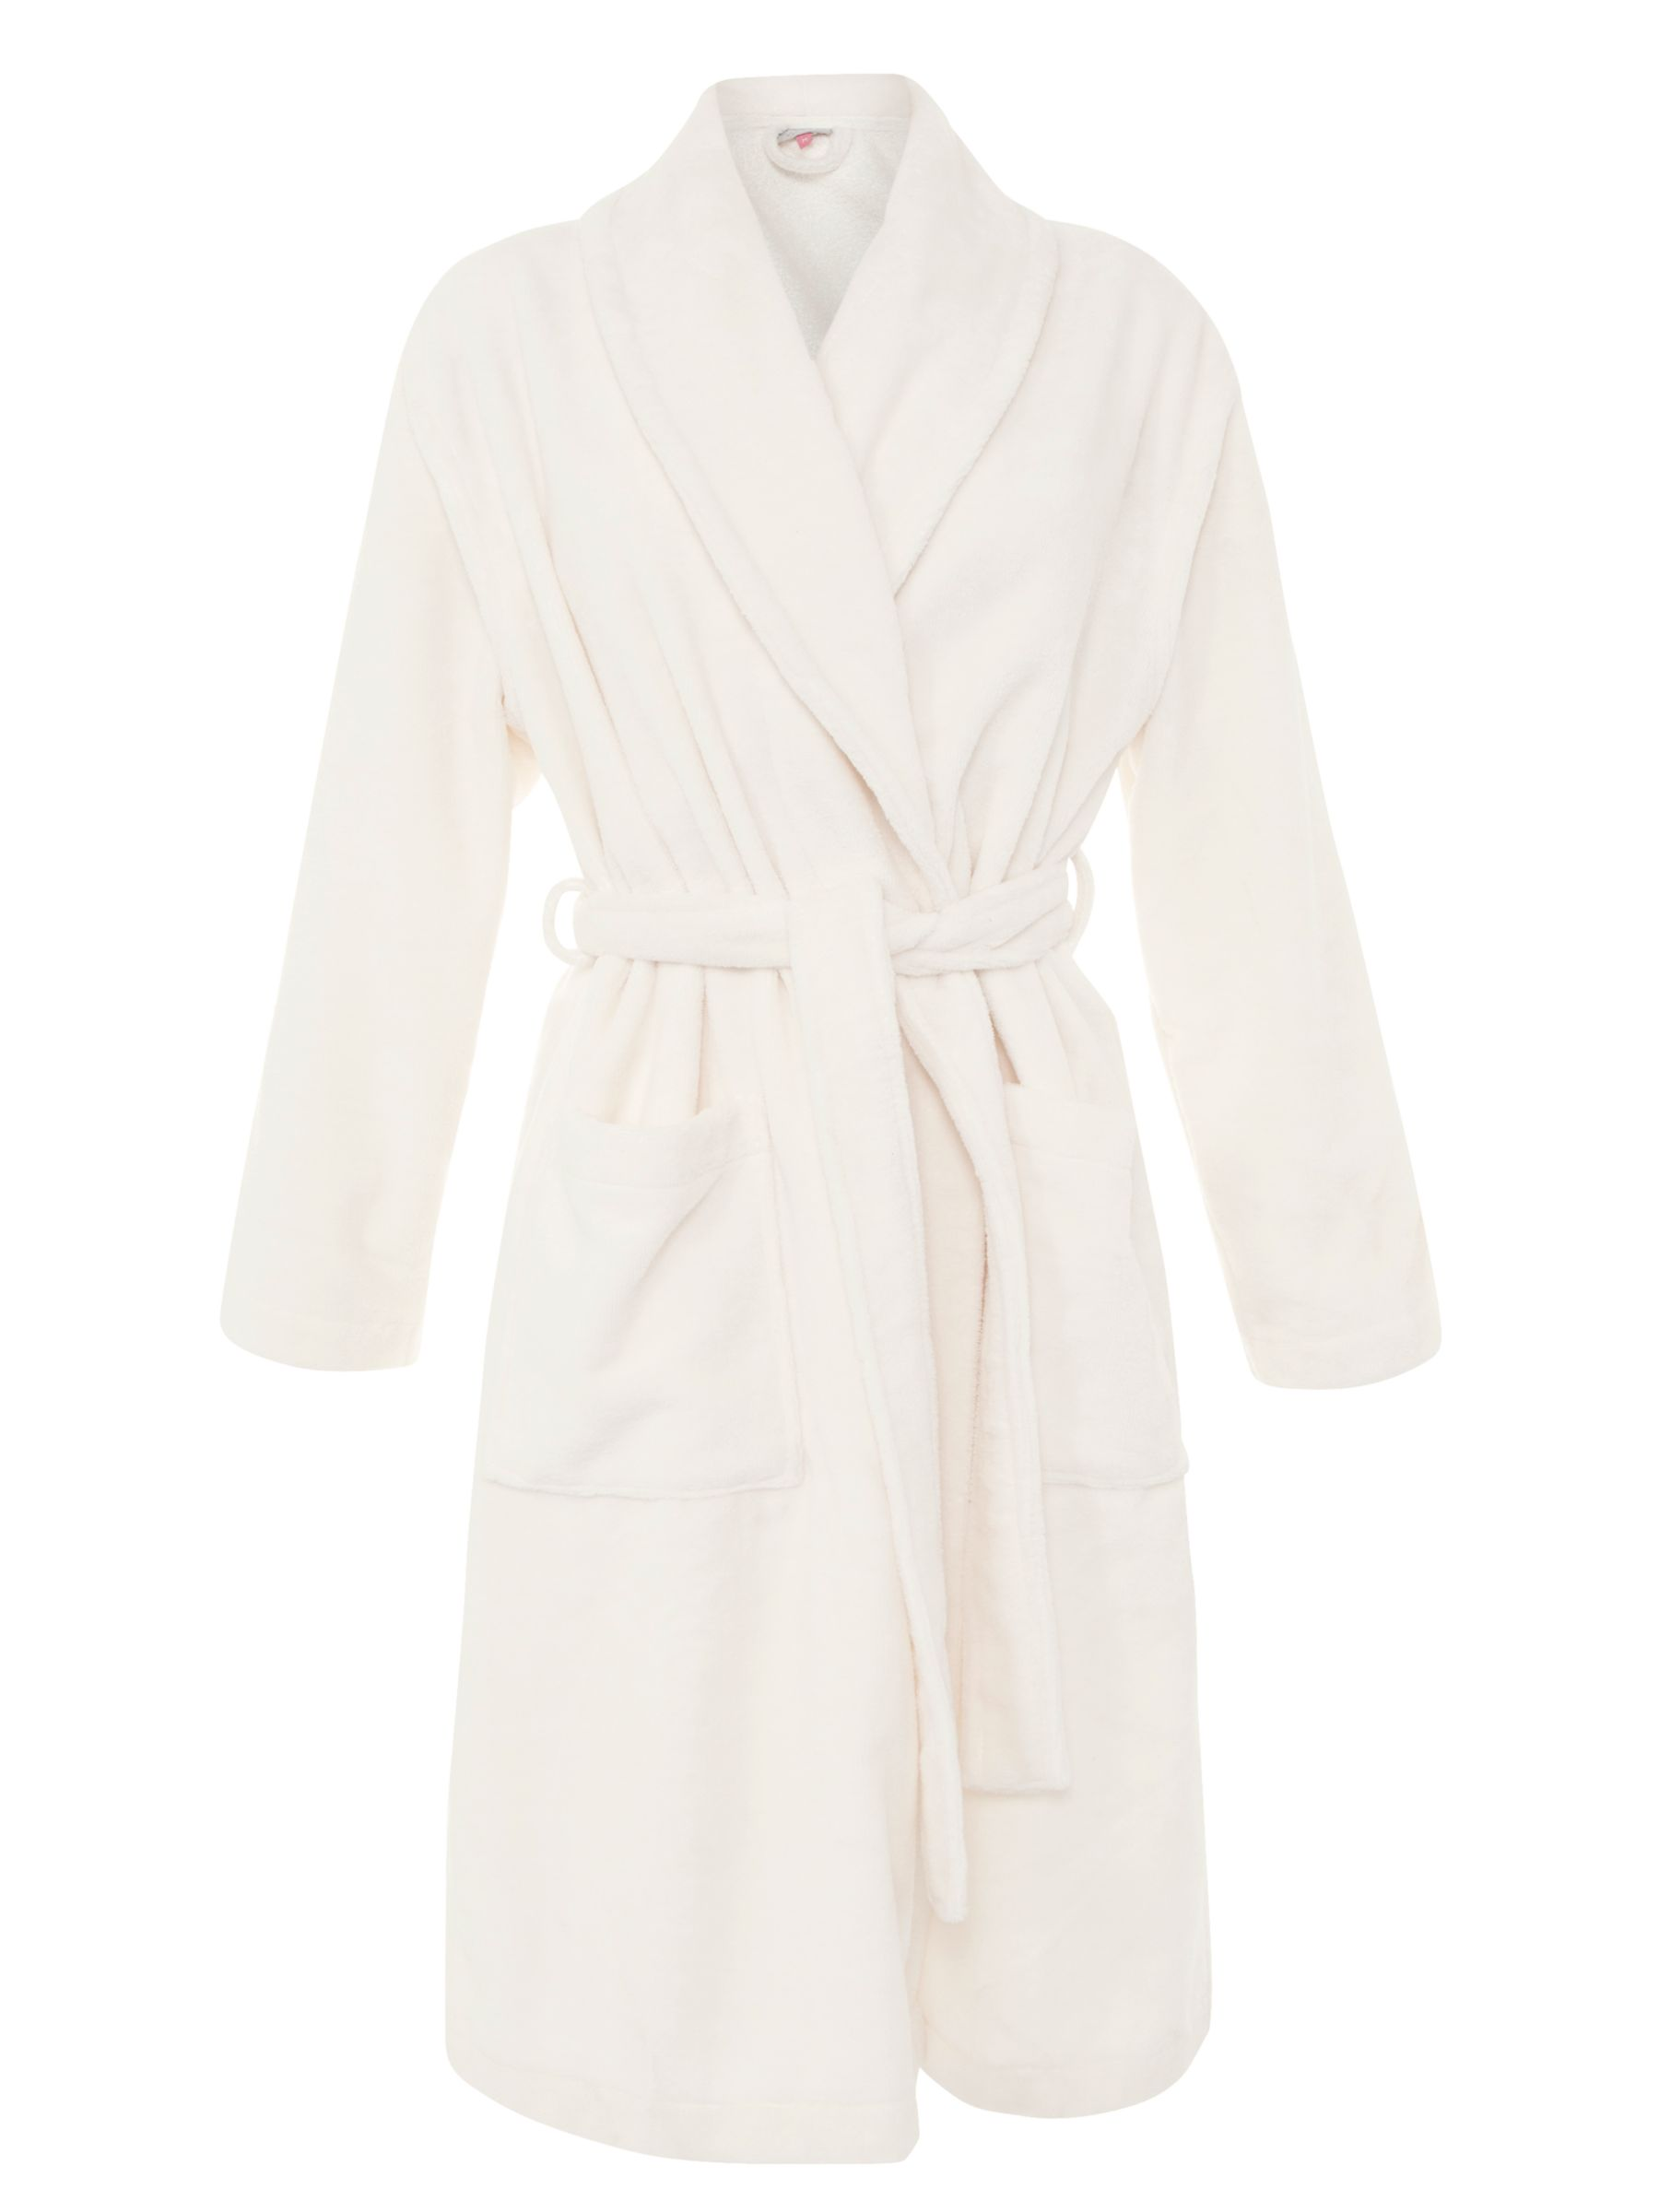 John Lewis Velour Robe, Cream